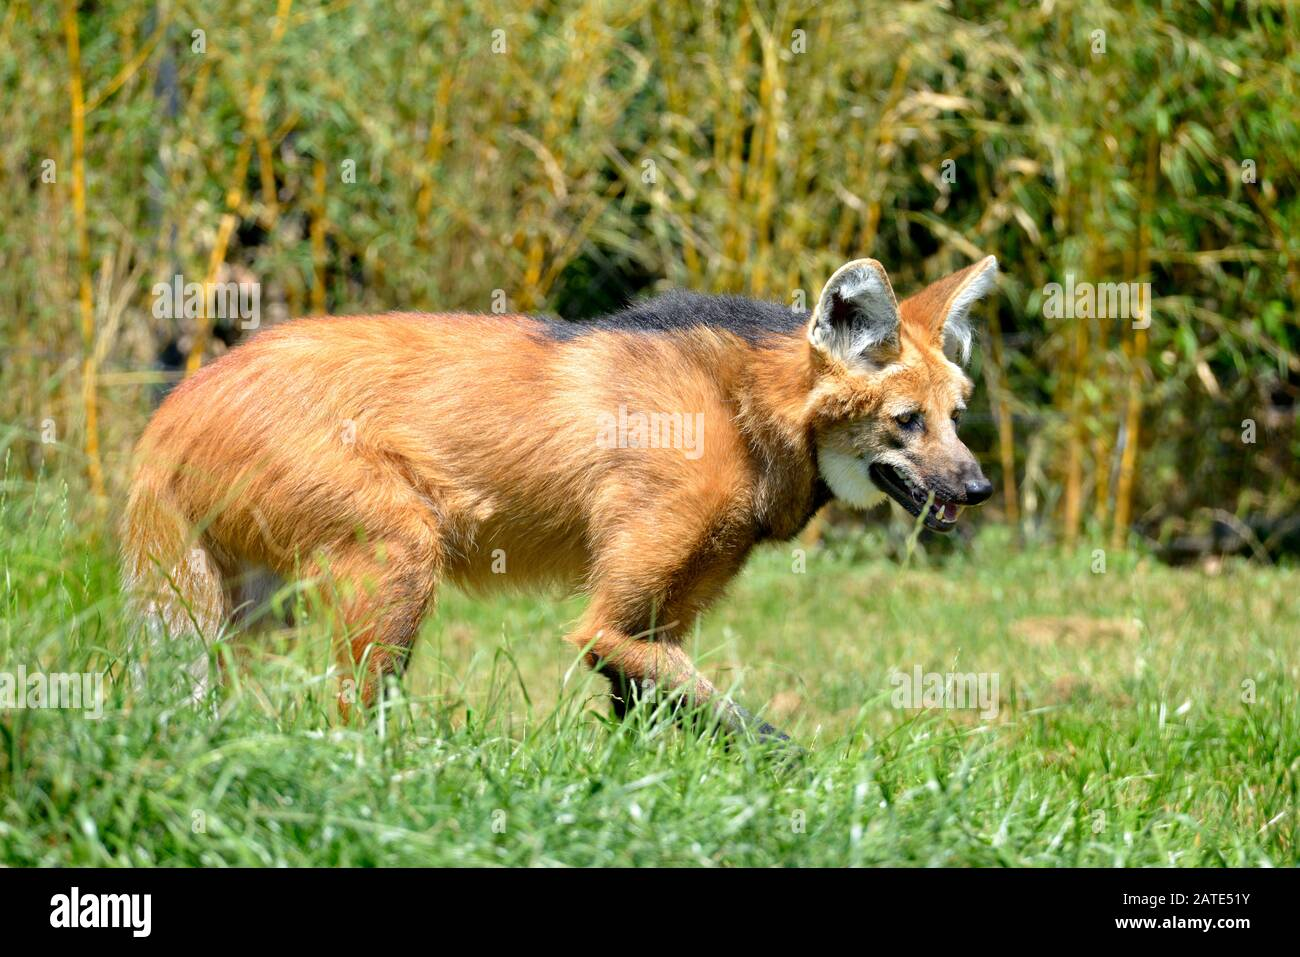 Maned Wolf (Chrysocyon brachyurus) walking in grass and seen from profile, the open mouth Stock Photo